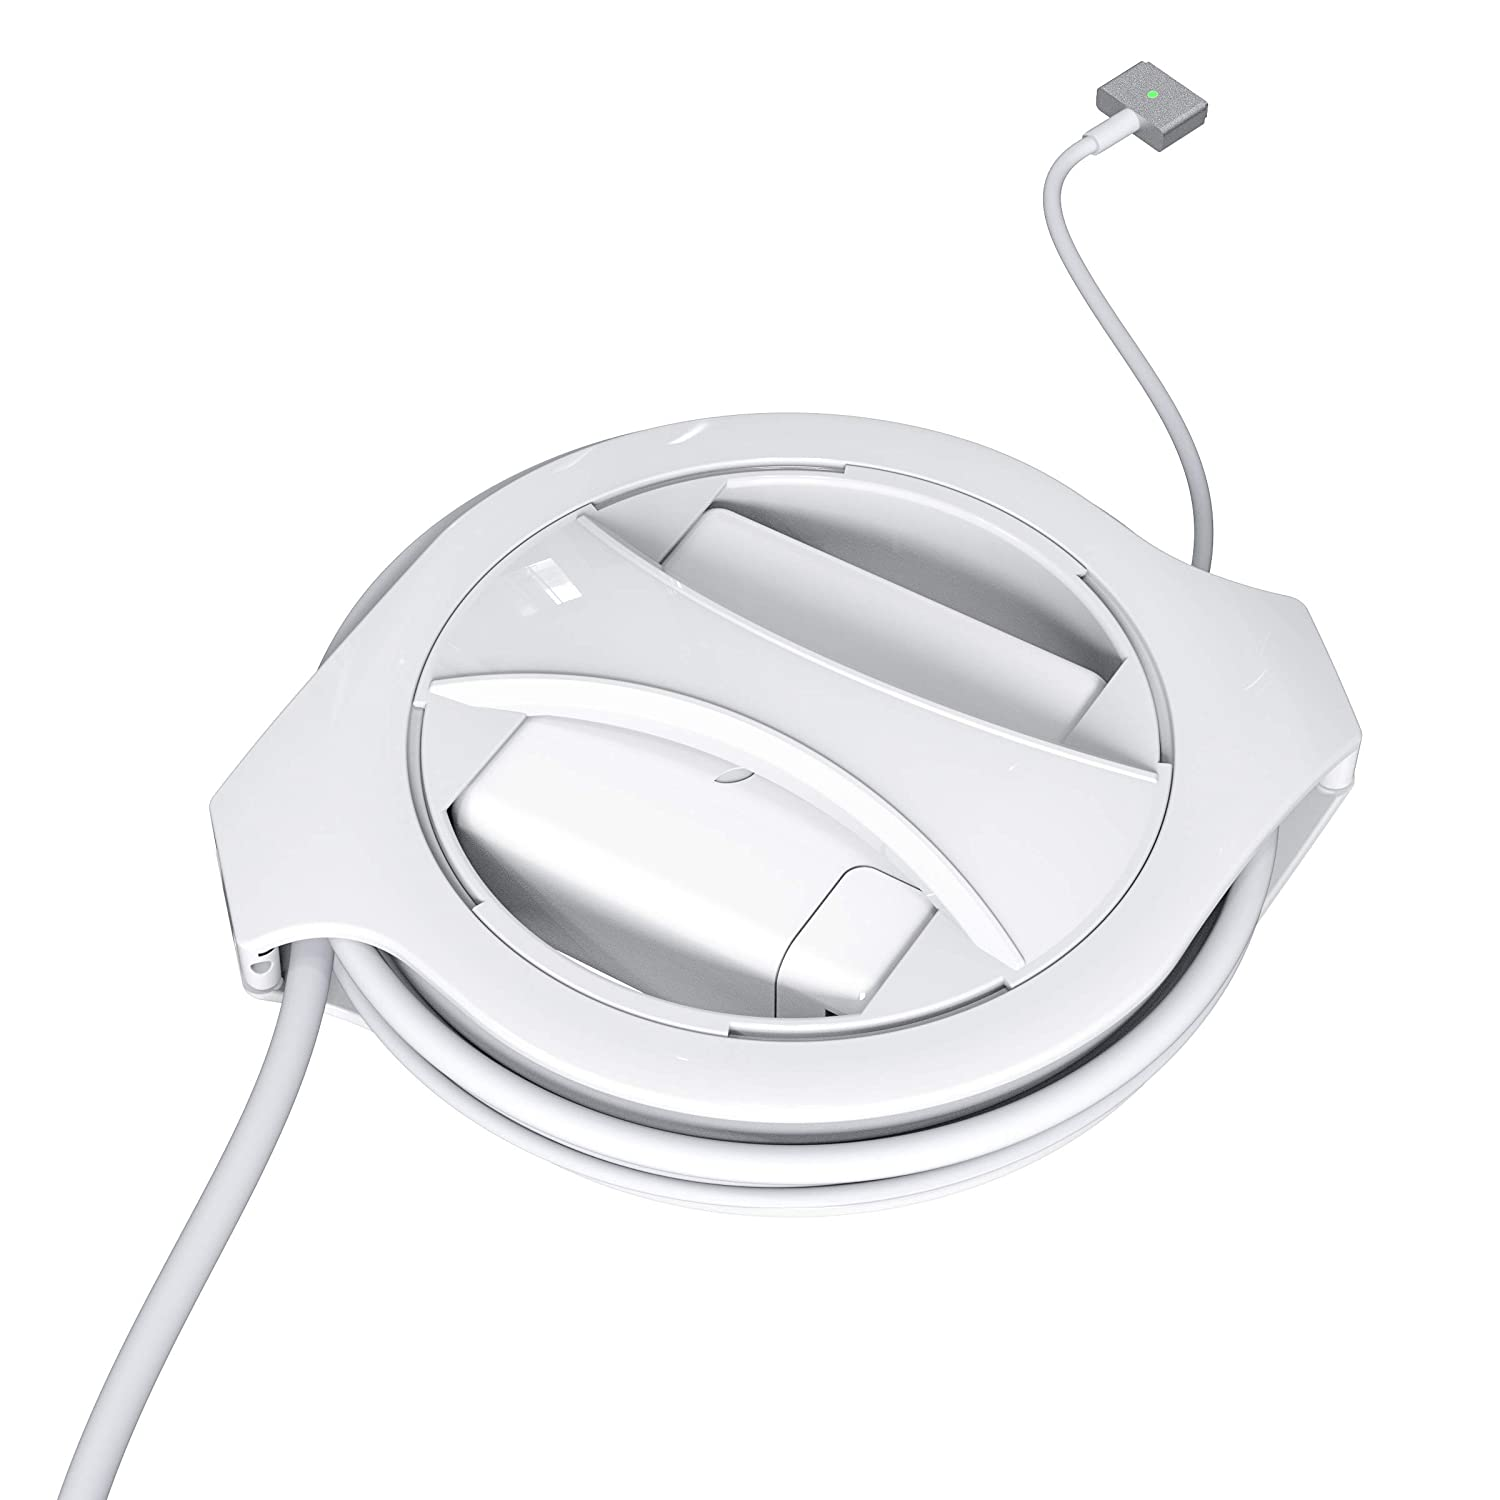 The Side Winder MagSafe MacBook Charger Winder Fuse White Cable Organizer